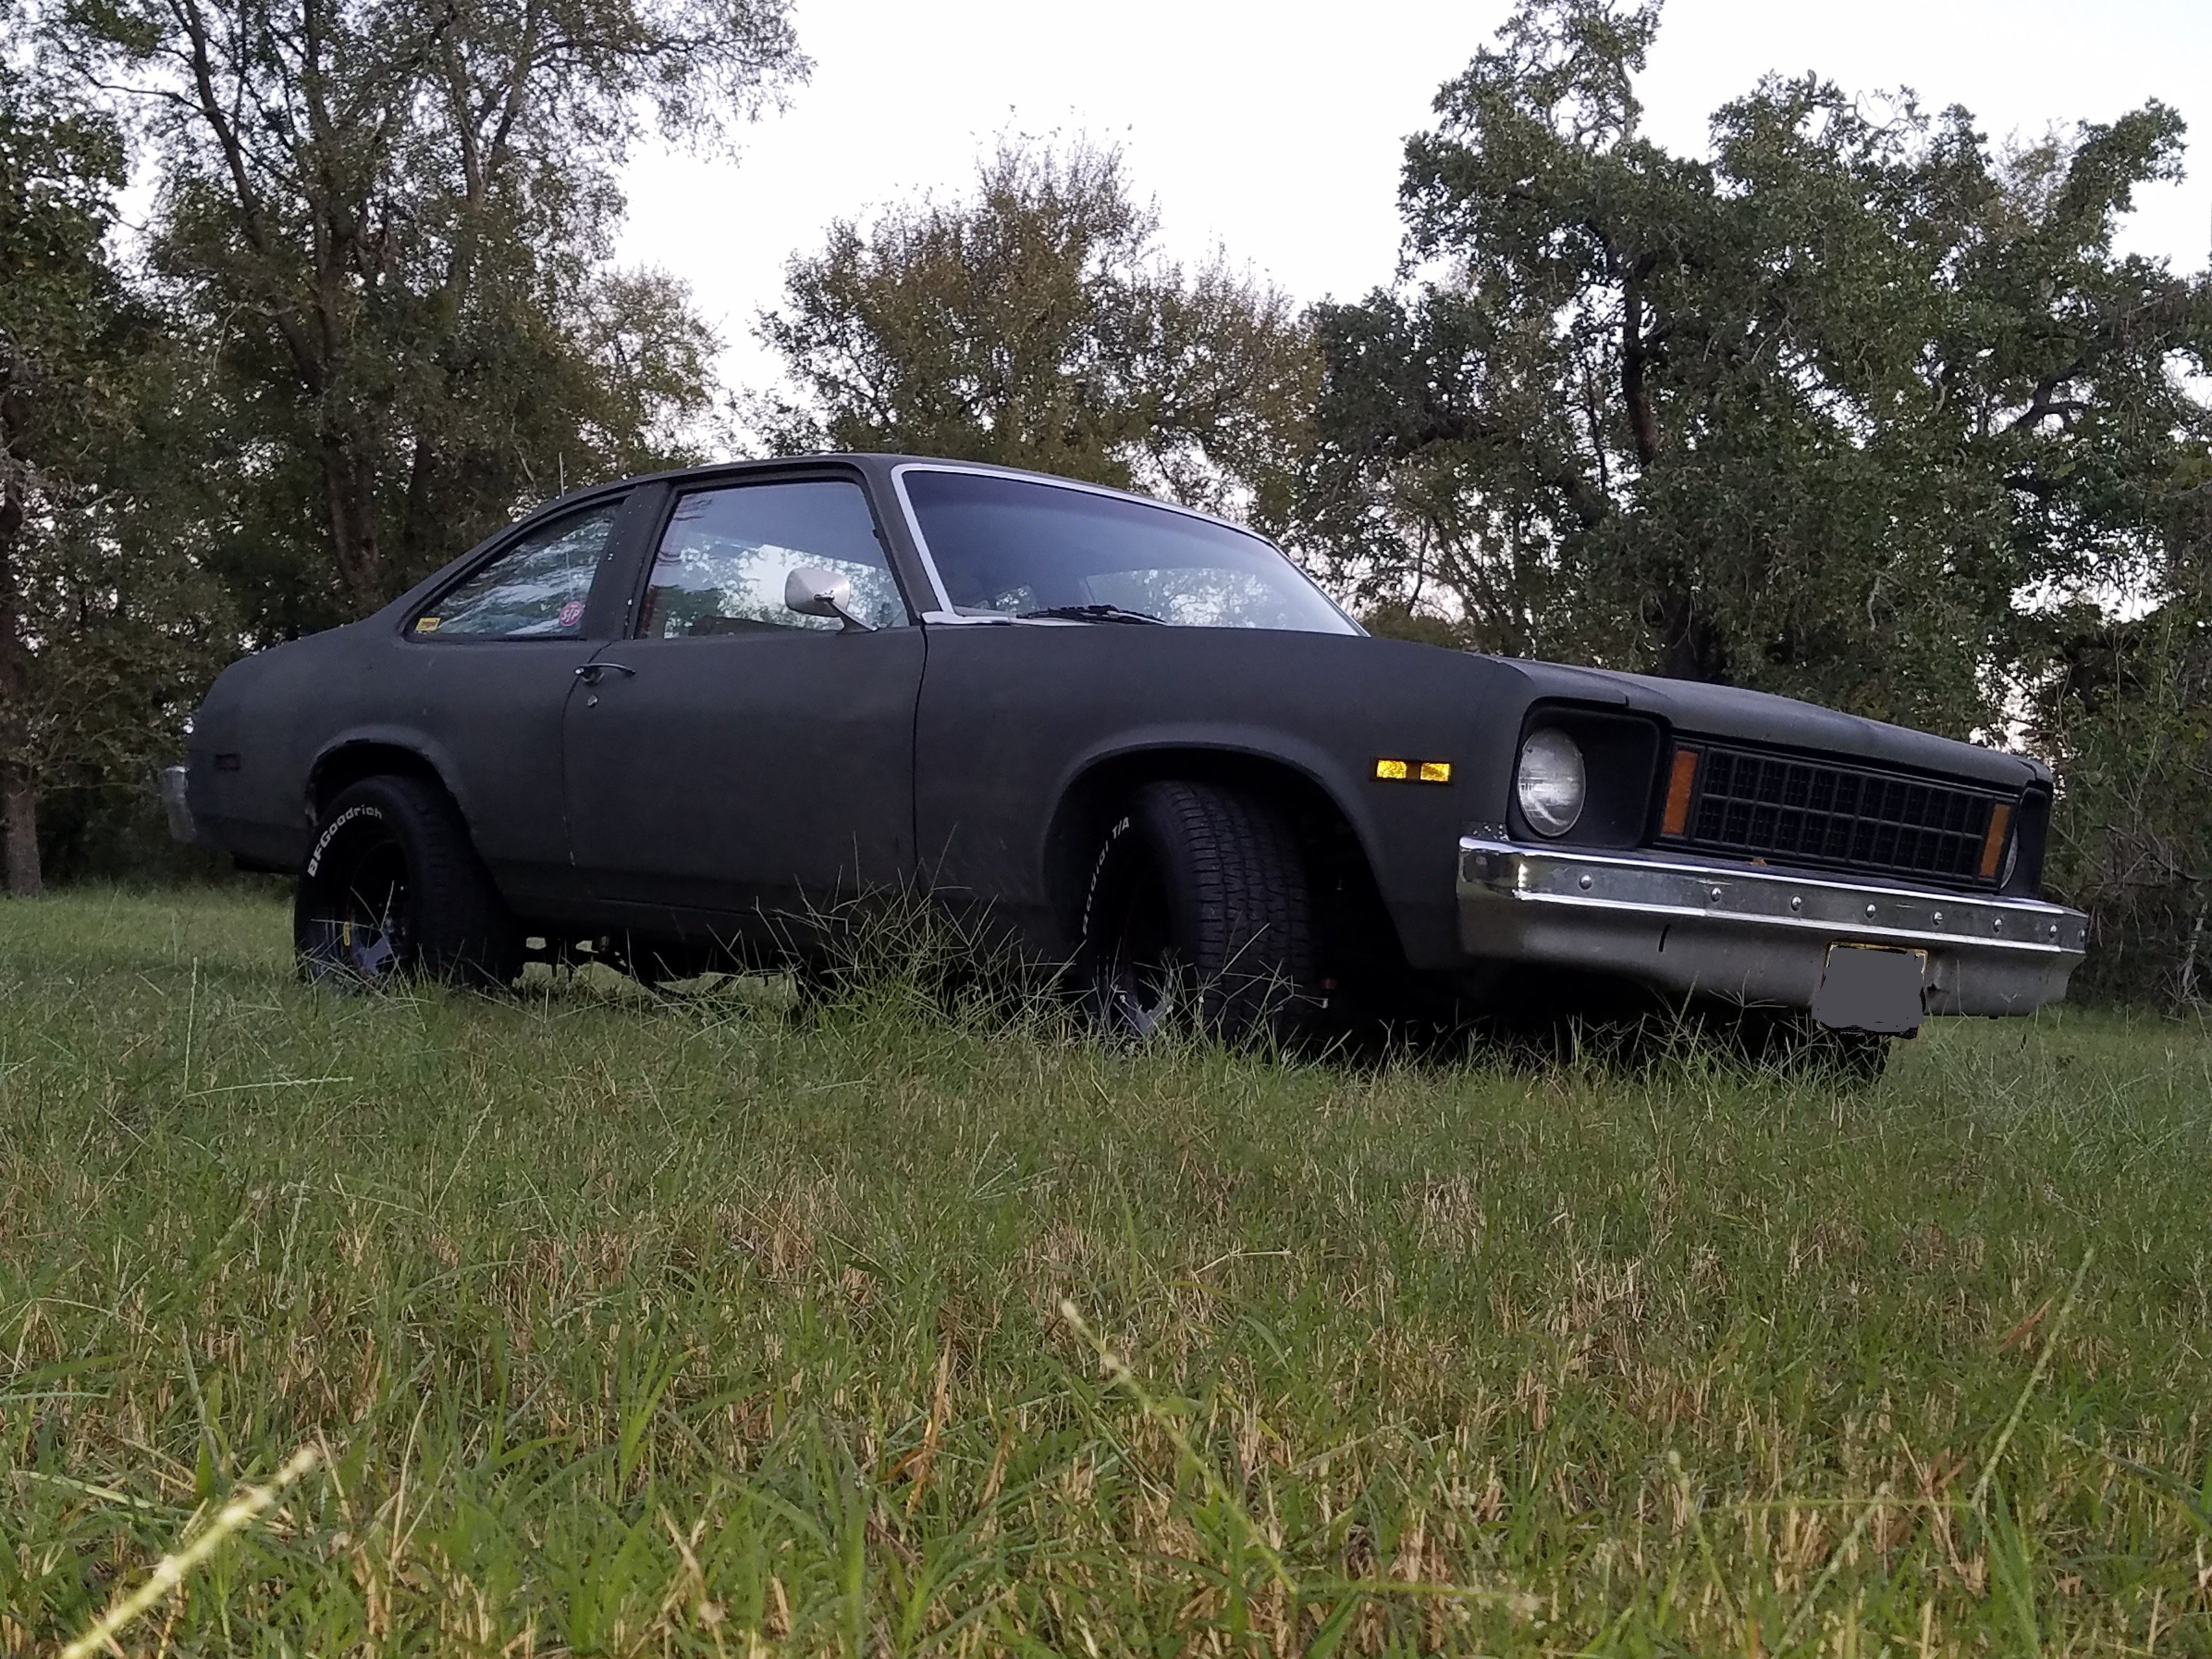 1977 Chevrolet Nova Coupe for sale near MANOR Texas 78653